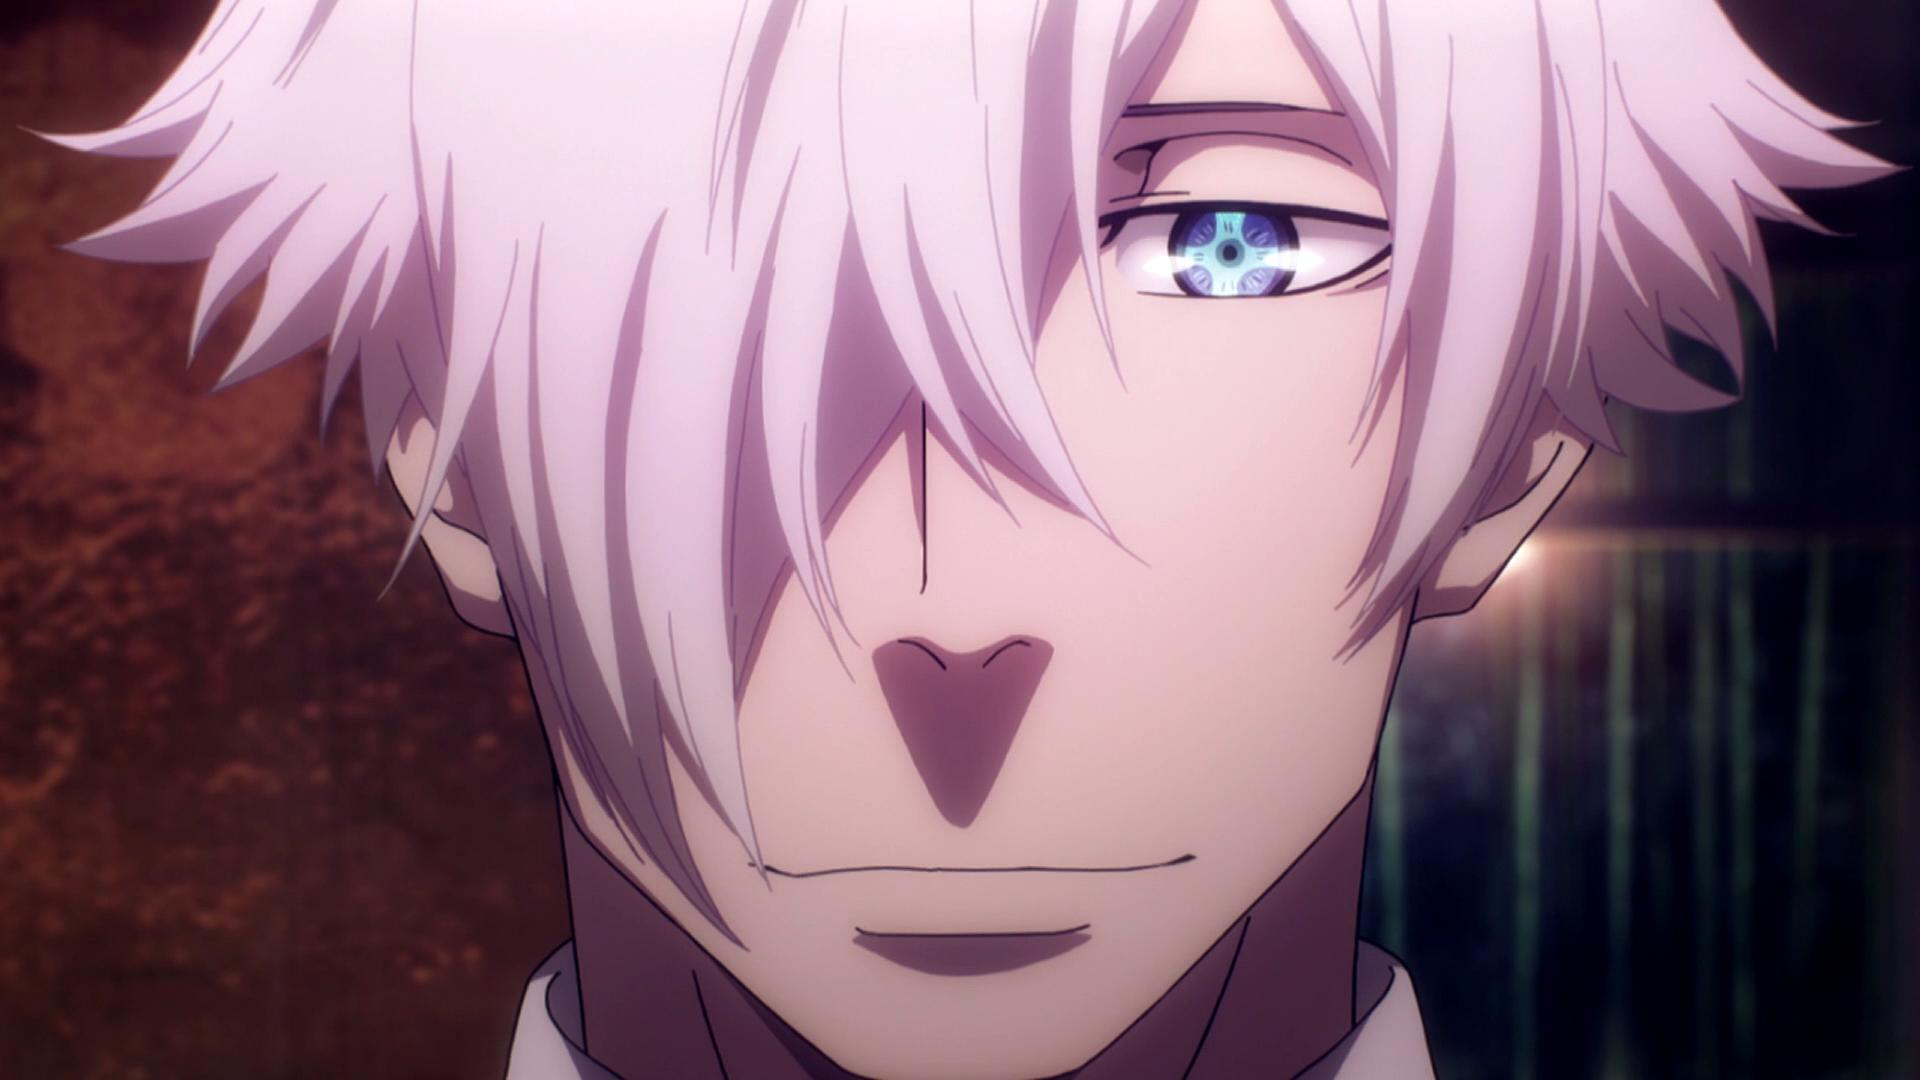 Anime Characters Smiling : Death parade smile anime know your meme